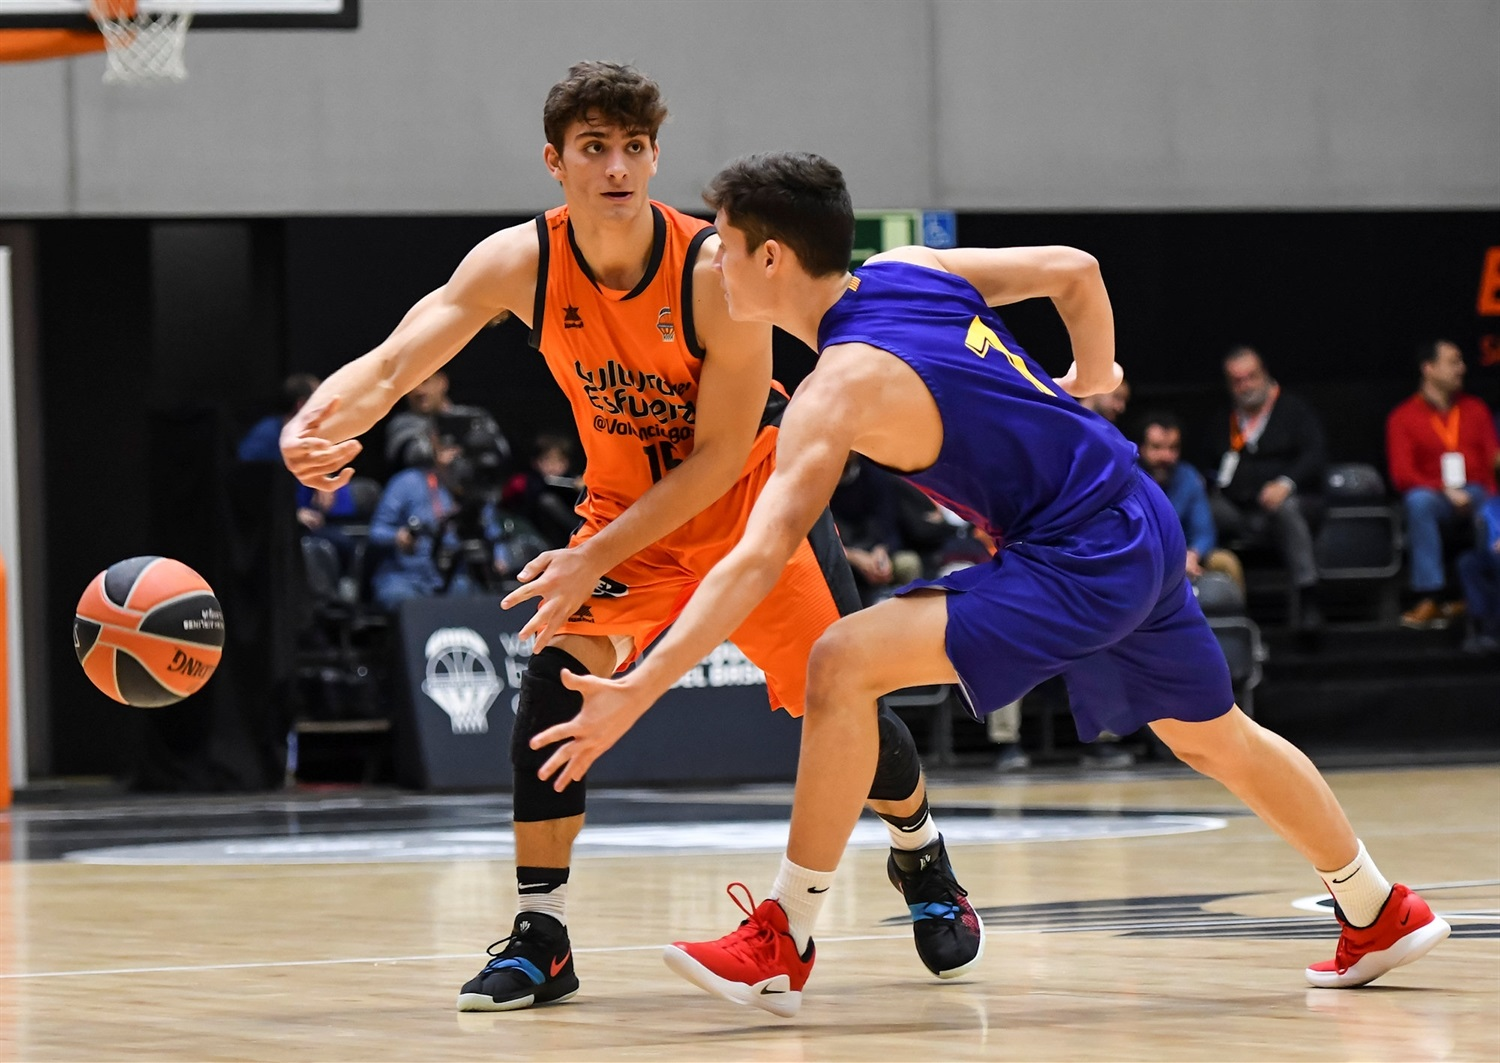 Alejandro Ortega - U18 Valencia Basket (photo Miguel Angel Polo - Valencia) - JT18